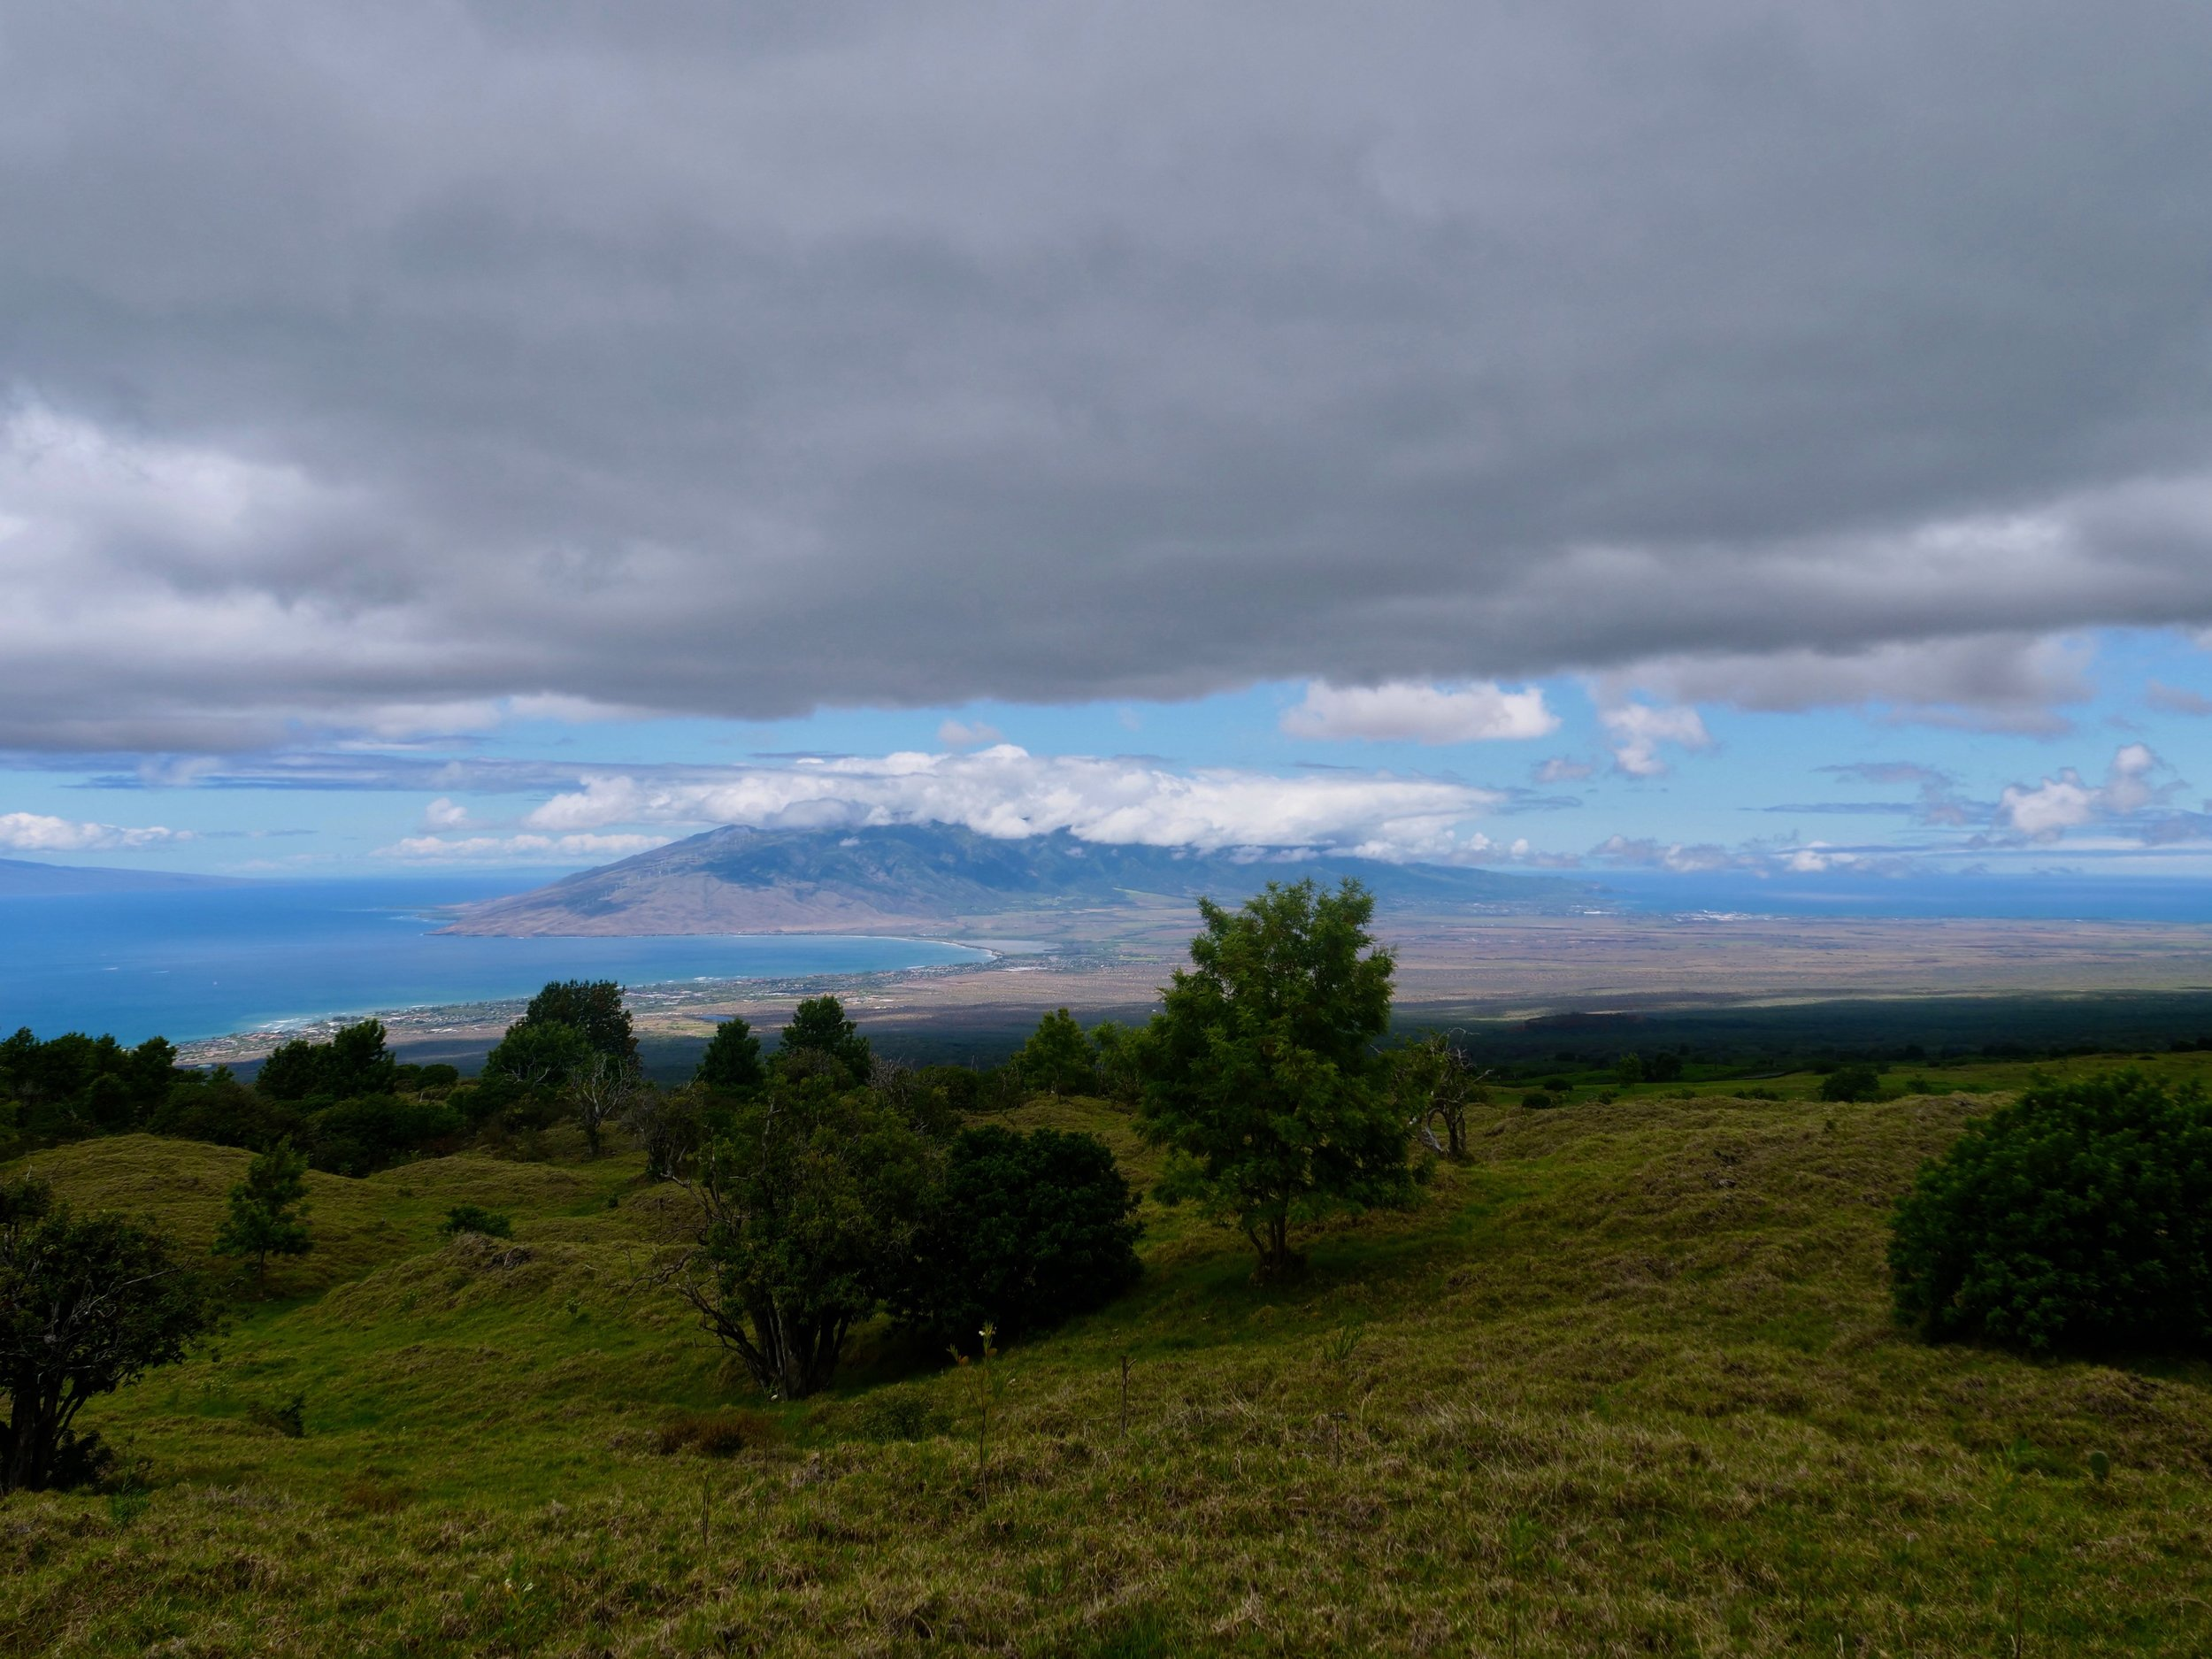 Looking down into the central valley of Maui.